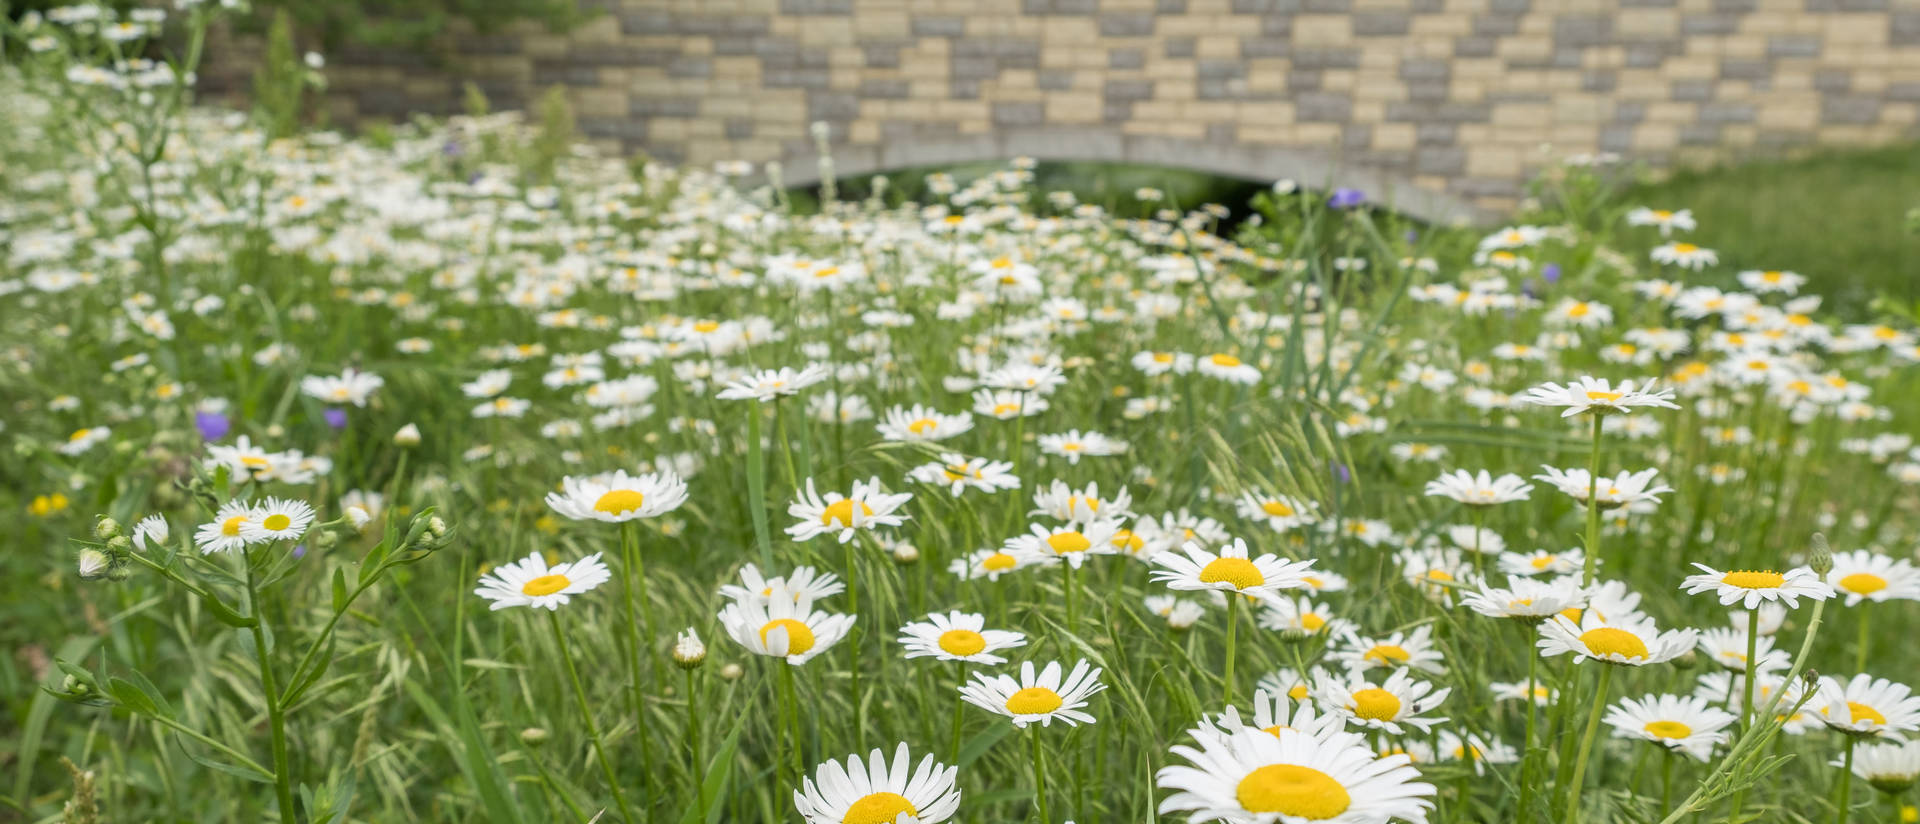 Daisy field on campus mall